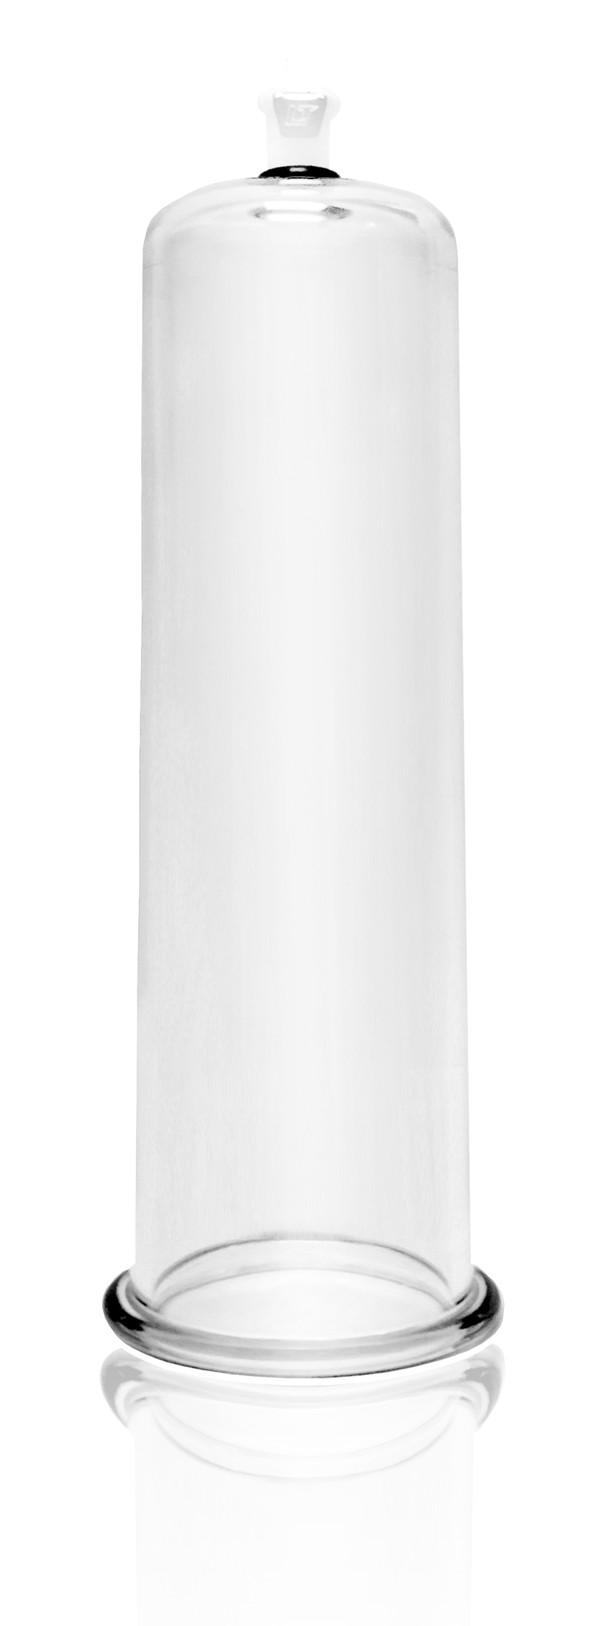 Second Expansion Cylinder